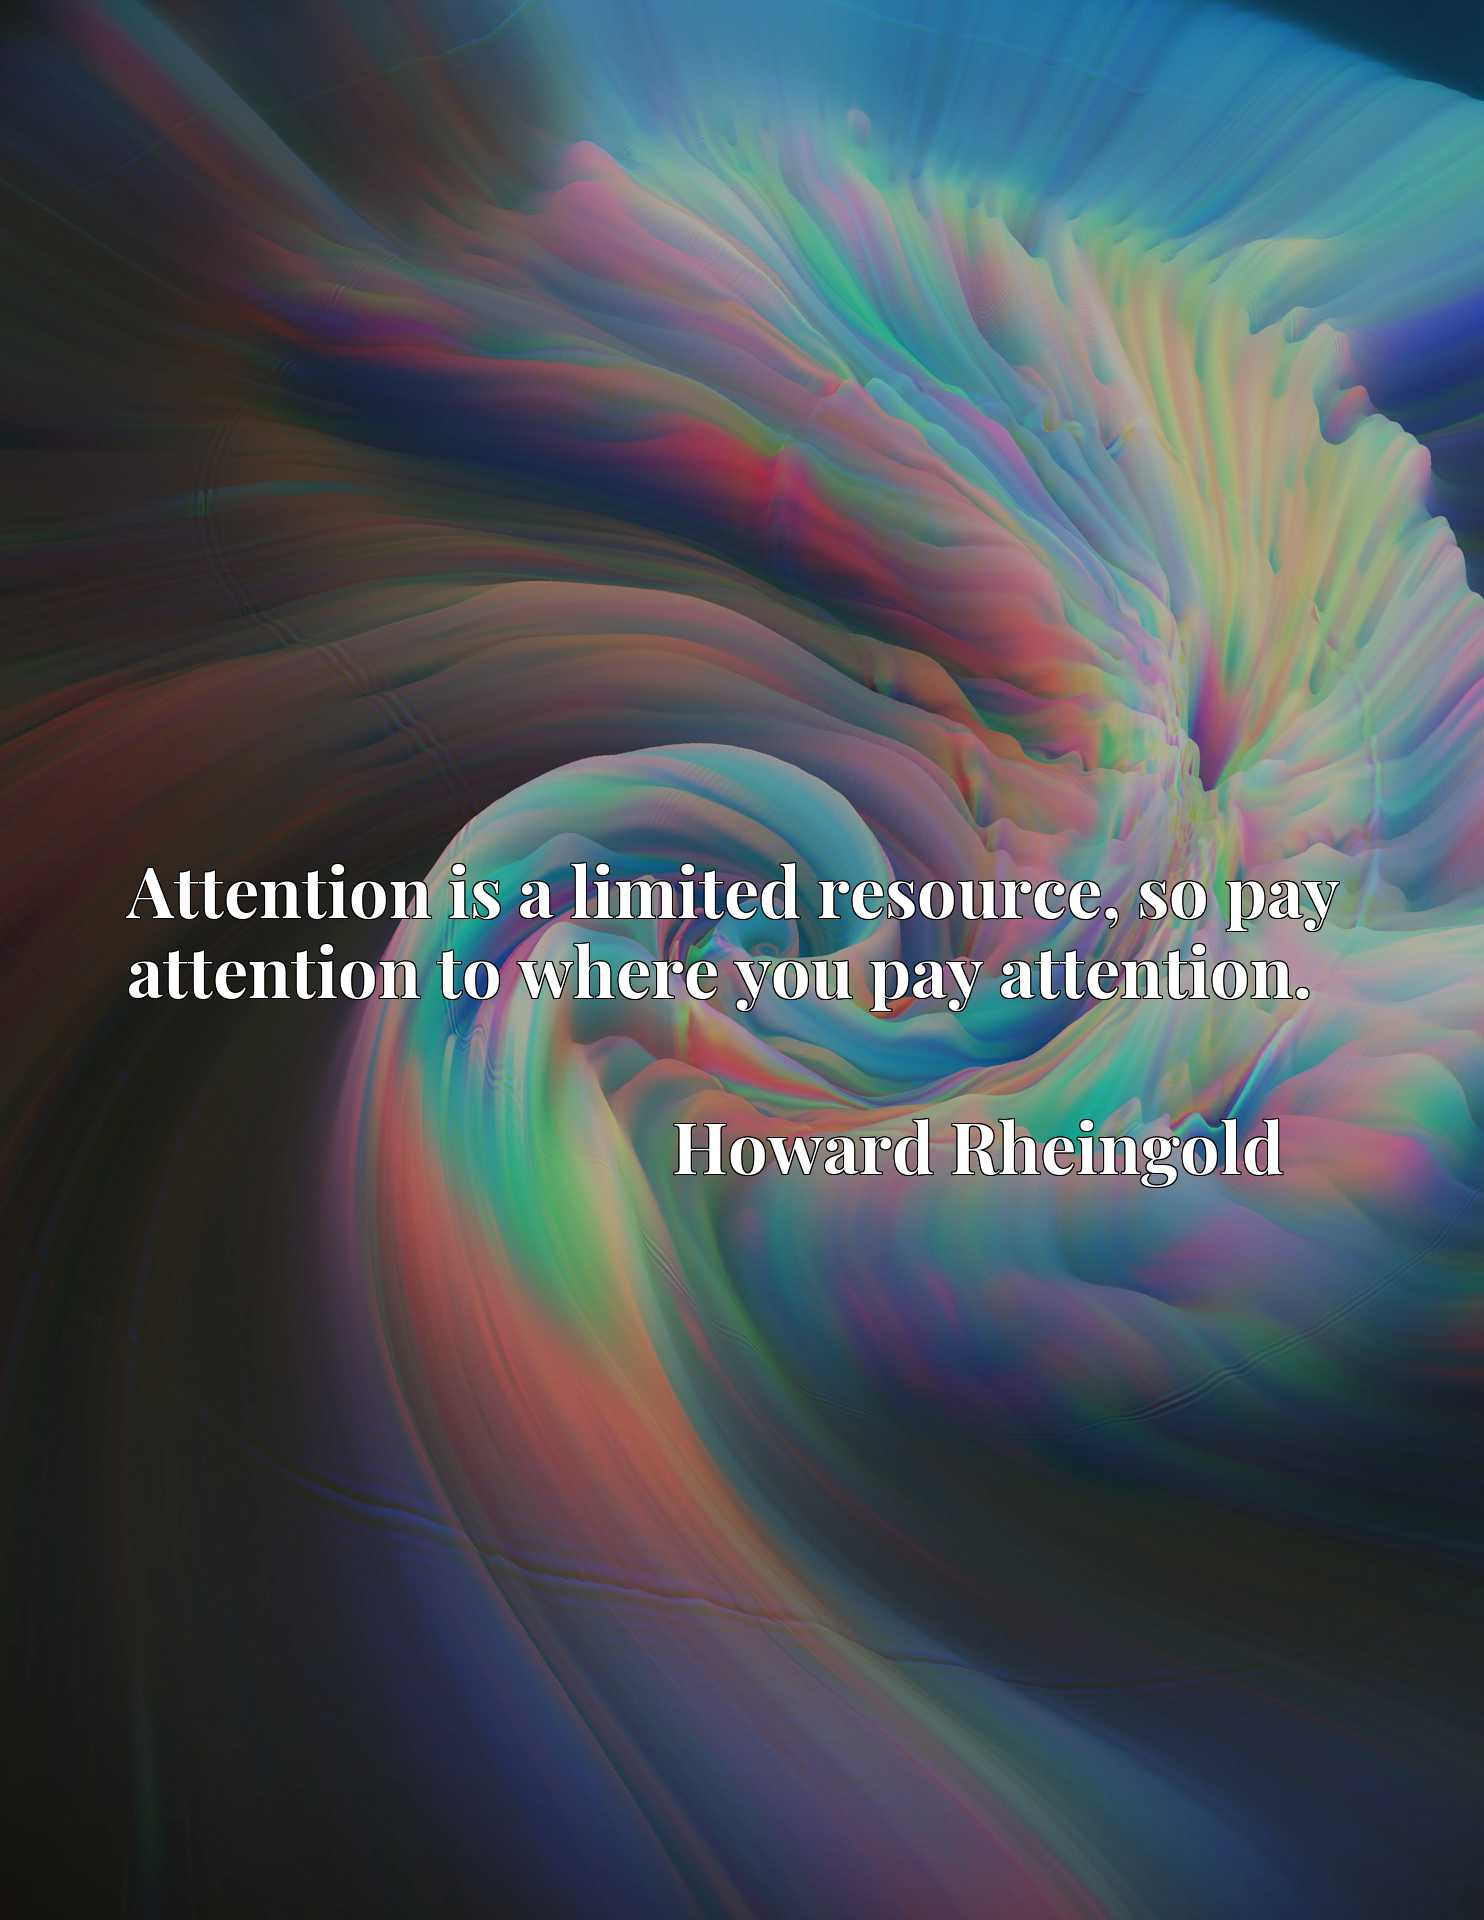 Attention is a limited resource, so pay attention to where you pay attention.